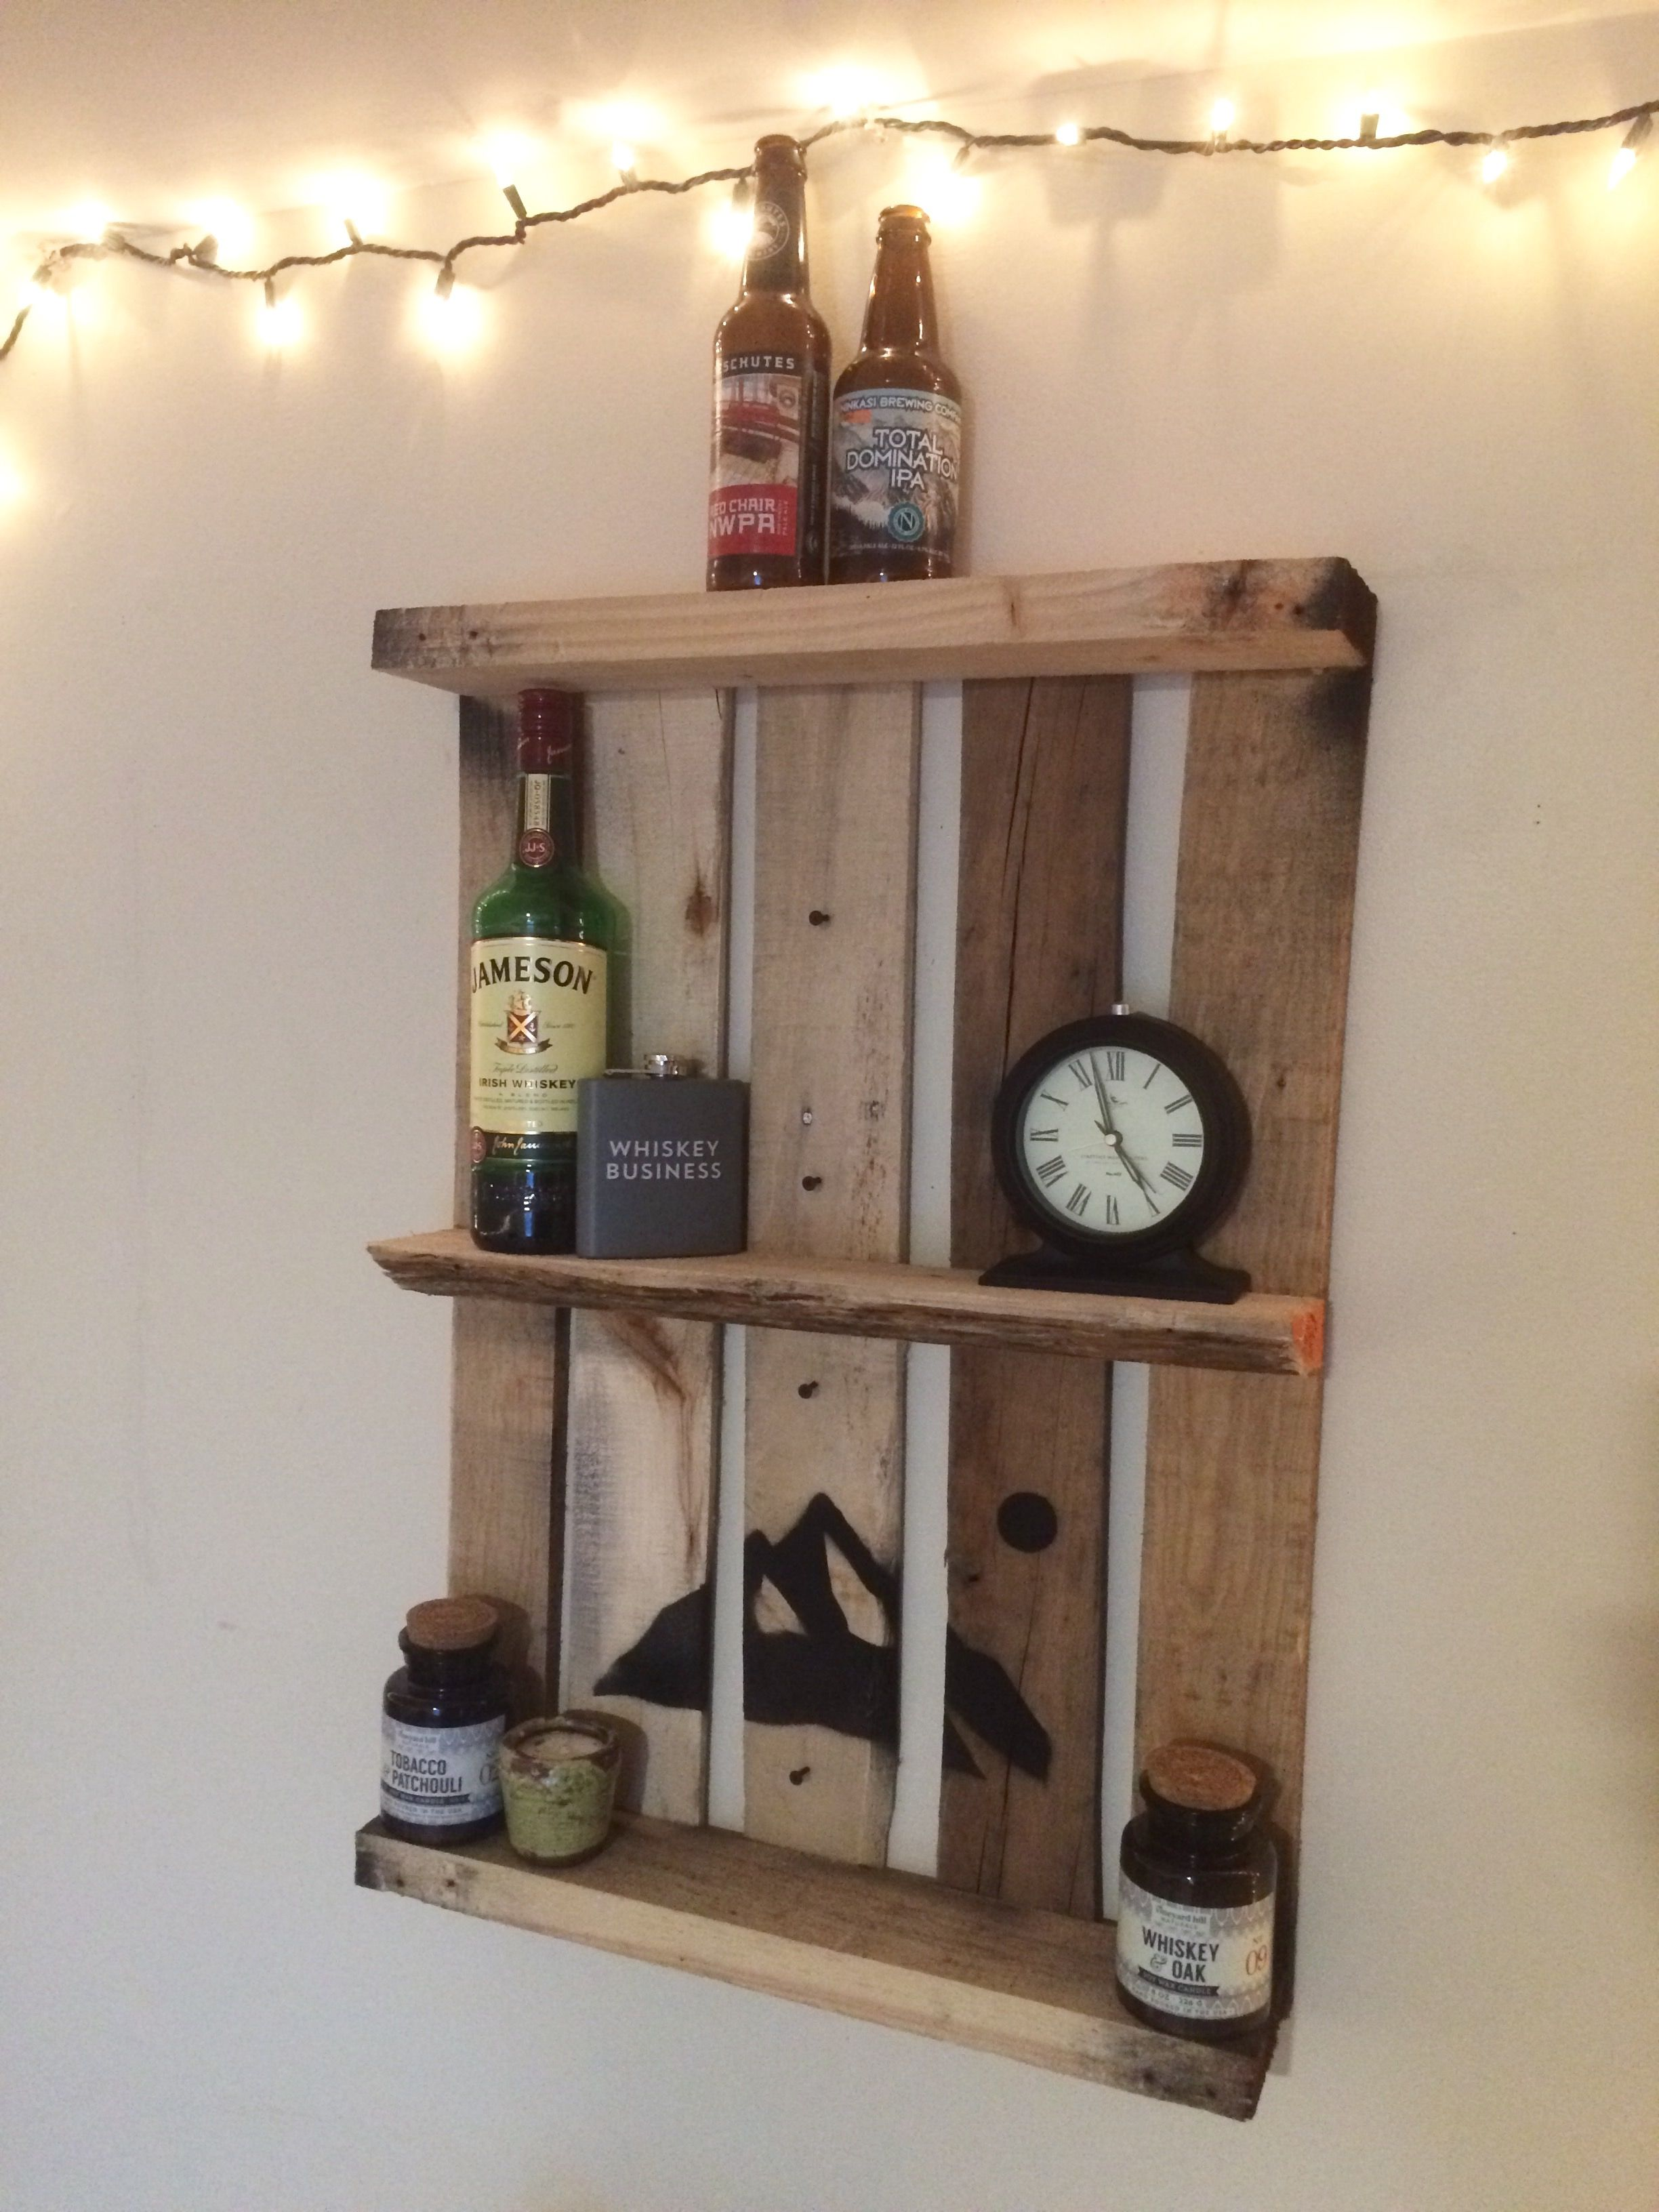 Easy. Used small pallet, removed two long planks, spray painted a stencil, screwed it into wall studs. Instant shelf. #shelf #shelving #interior #decor #diy #palletfurniture